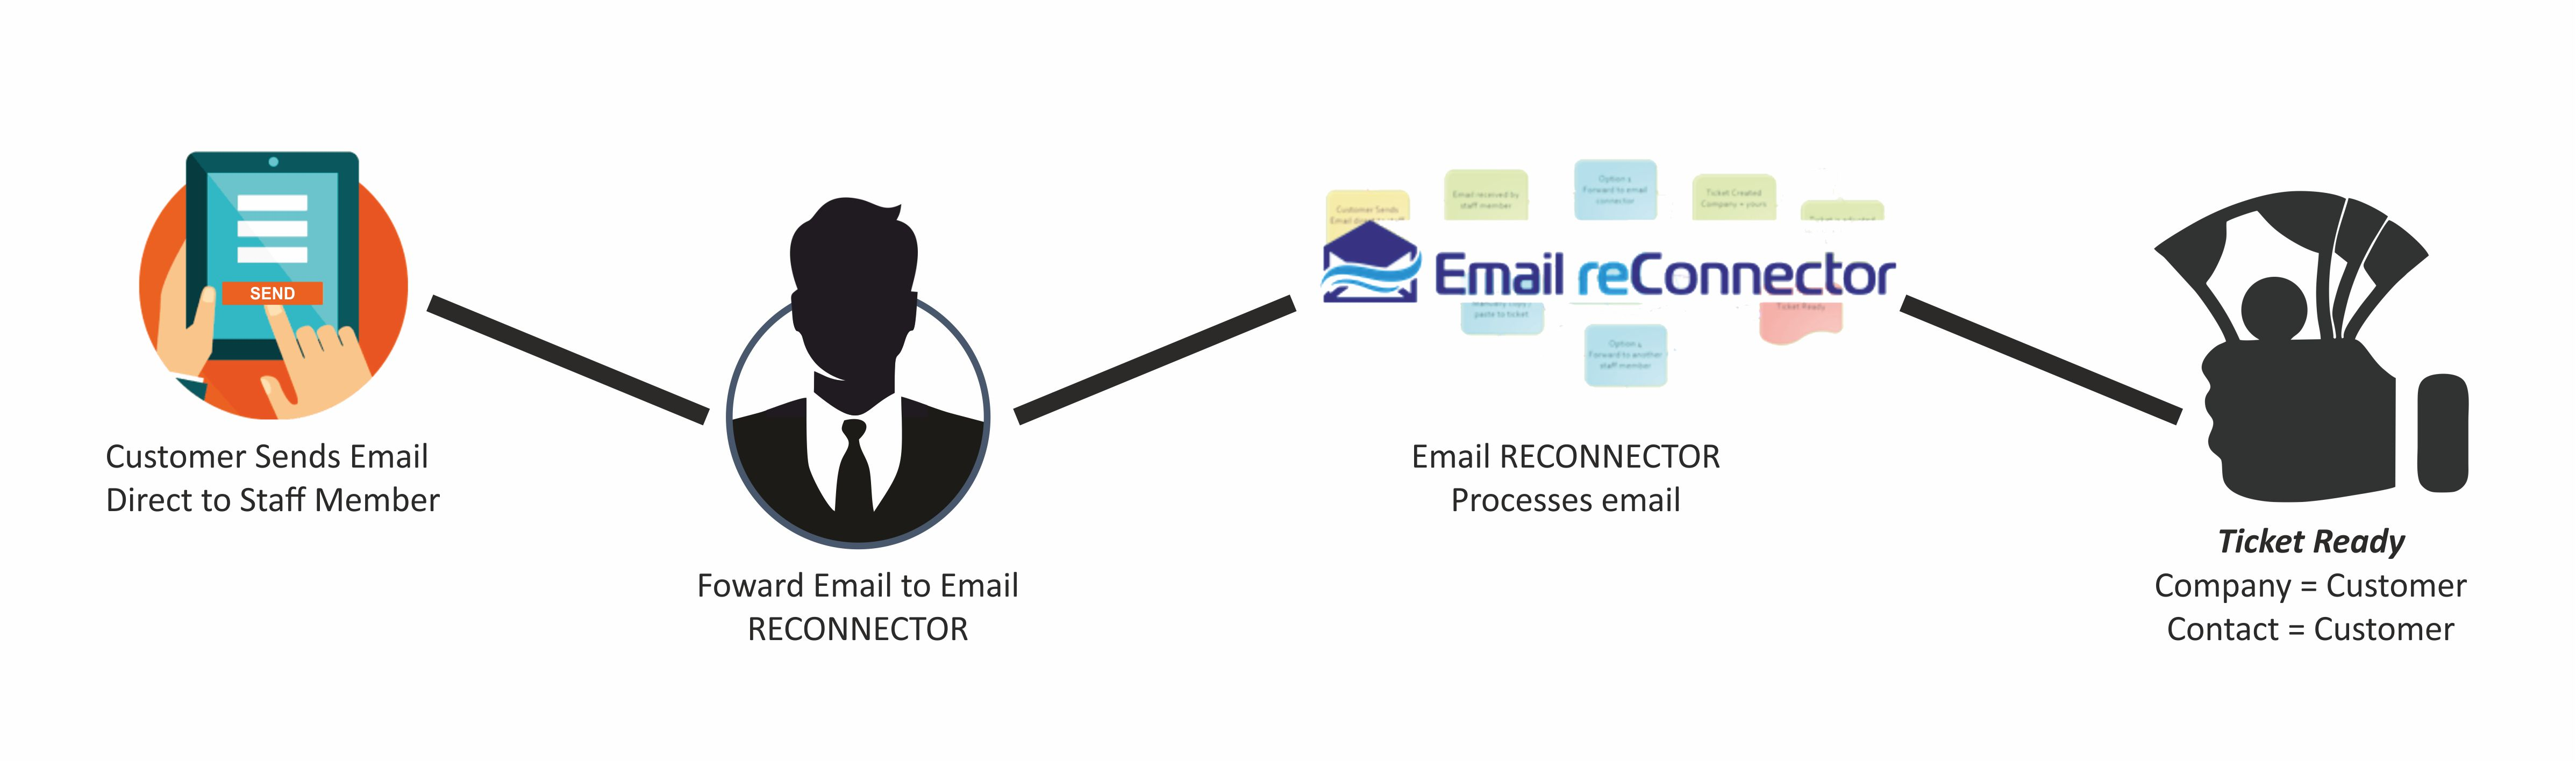 Email reConnector steps